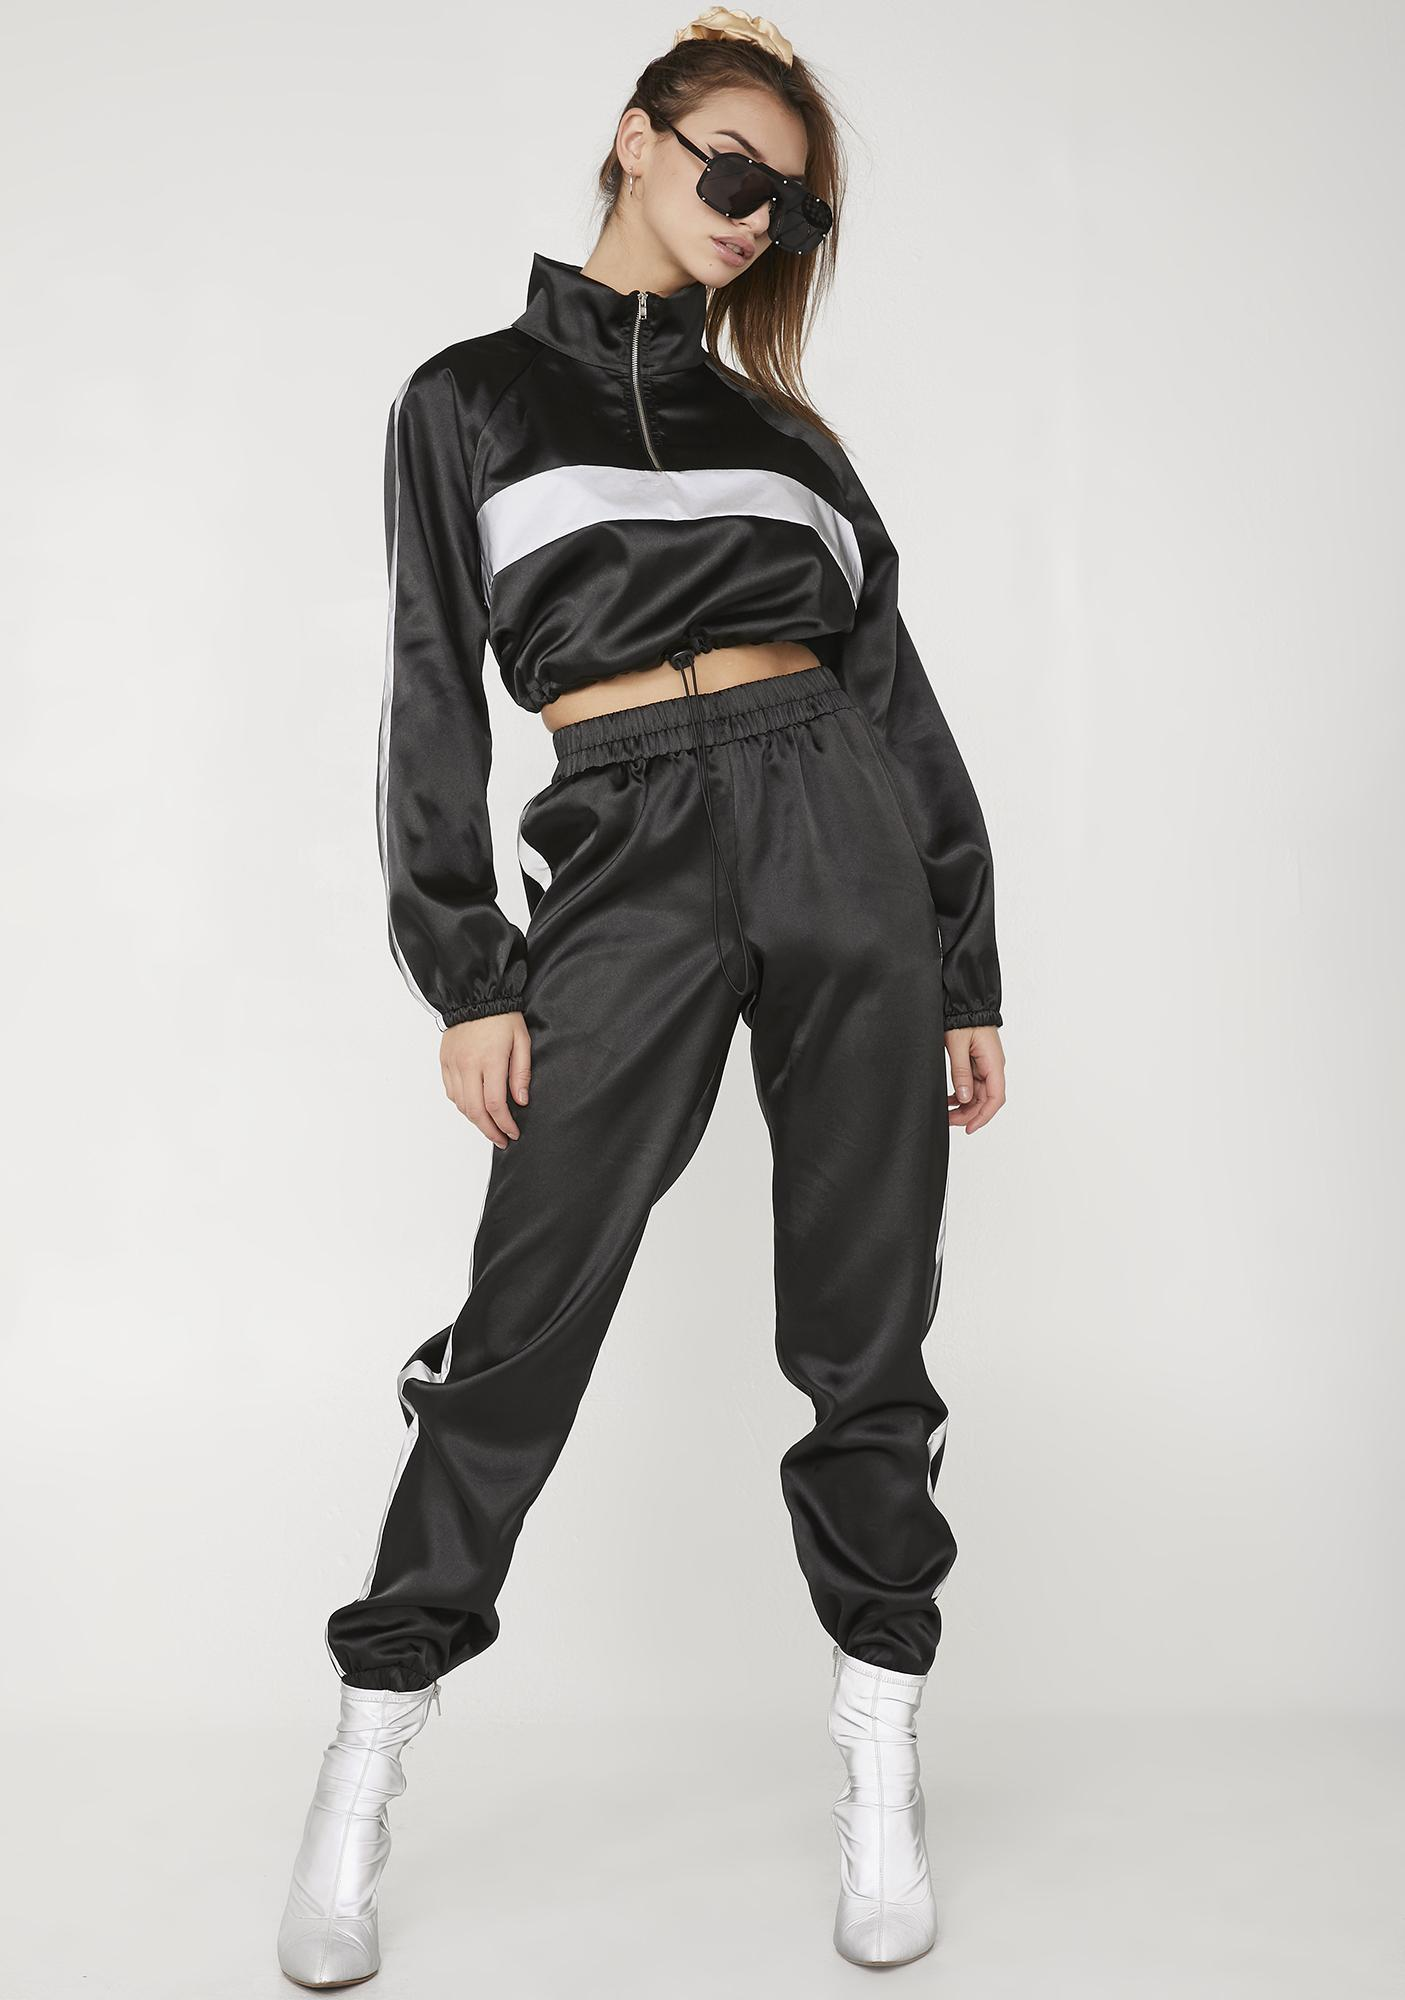 Superior Shine Reflective Tracksuit